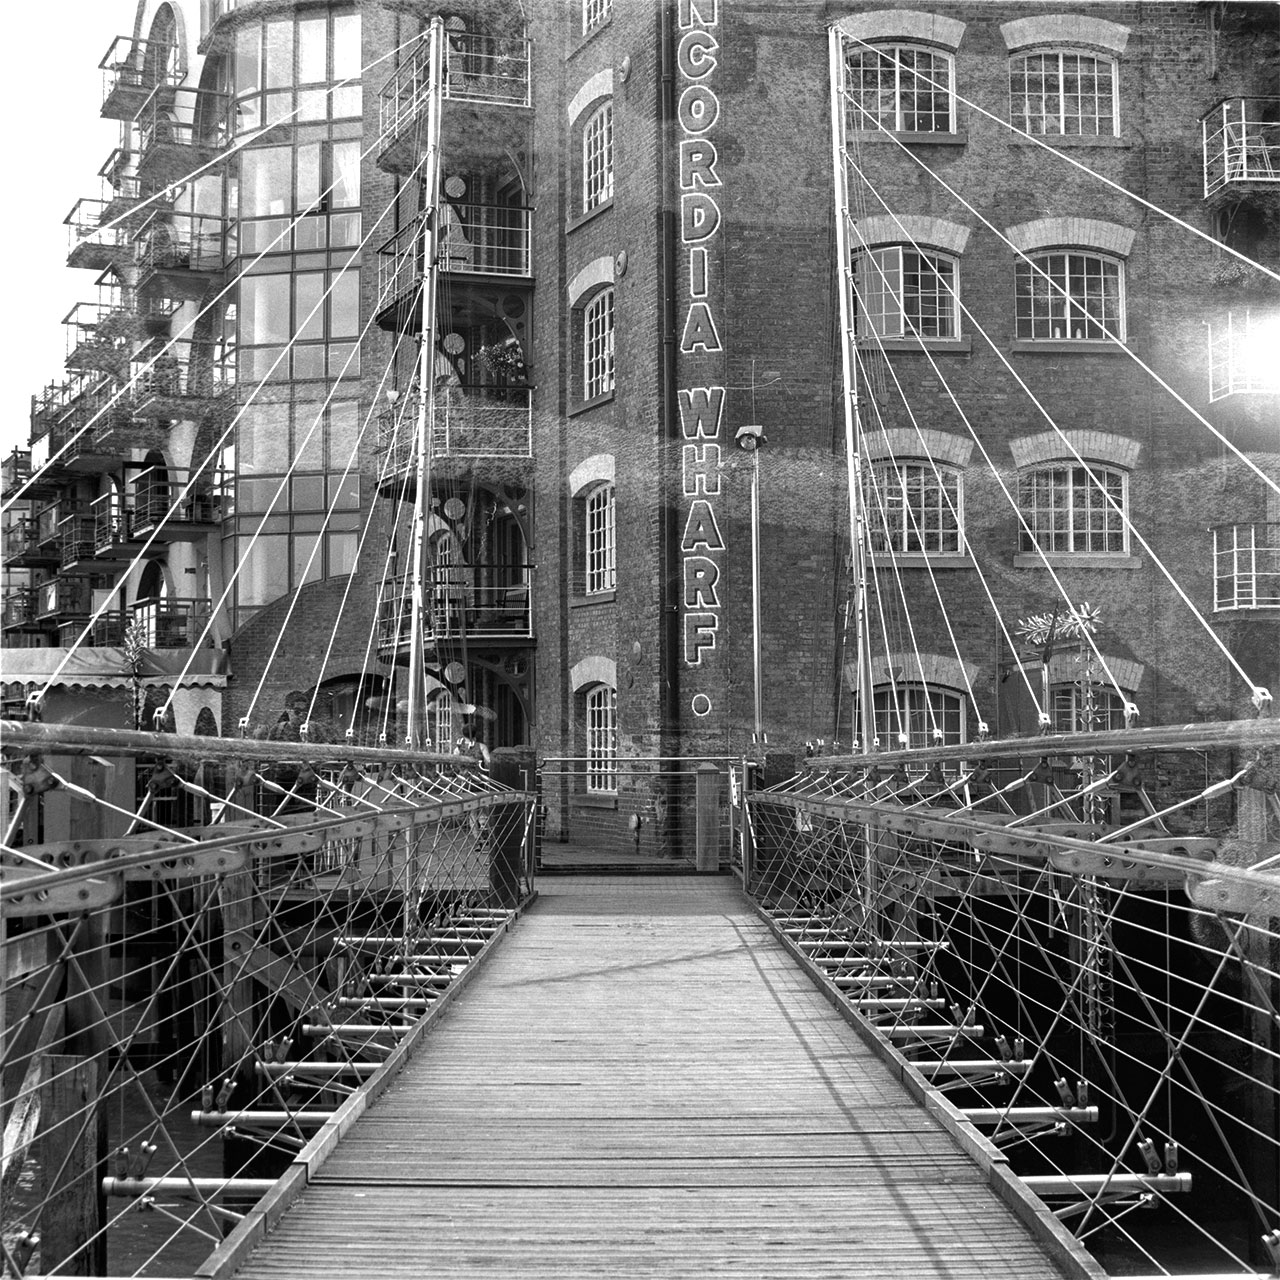 Concordia wharf bridge, London